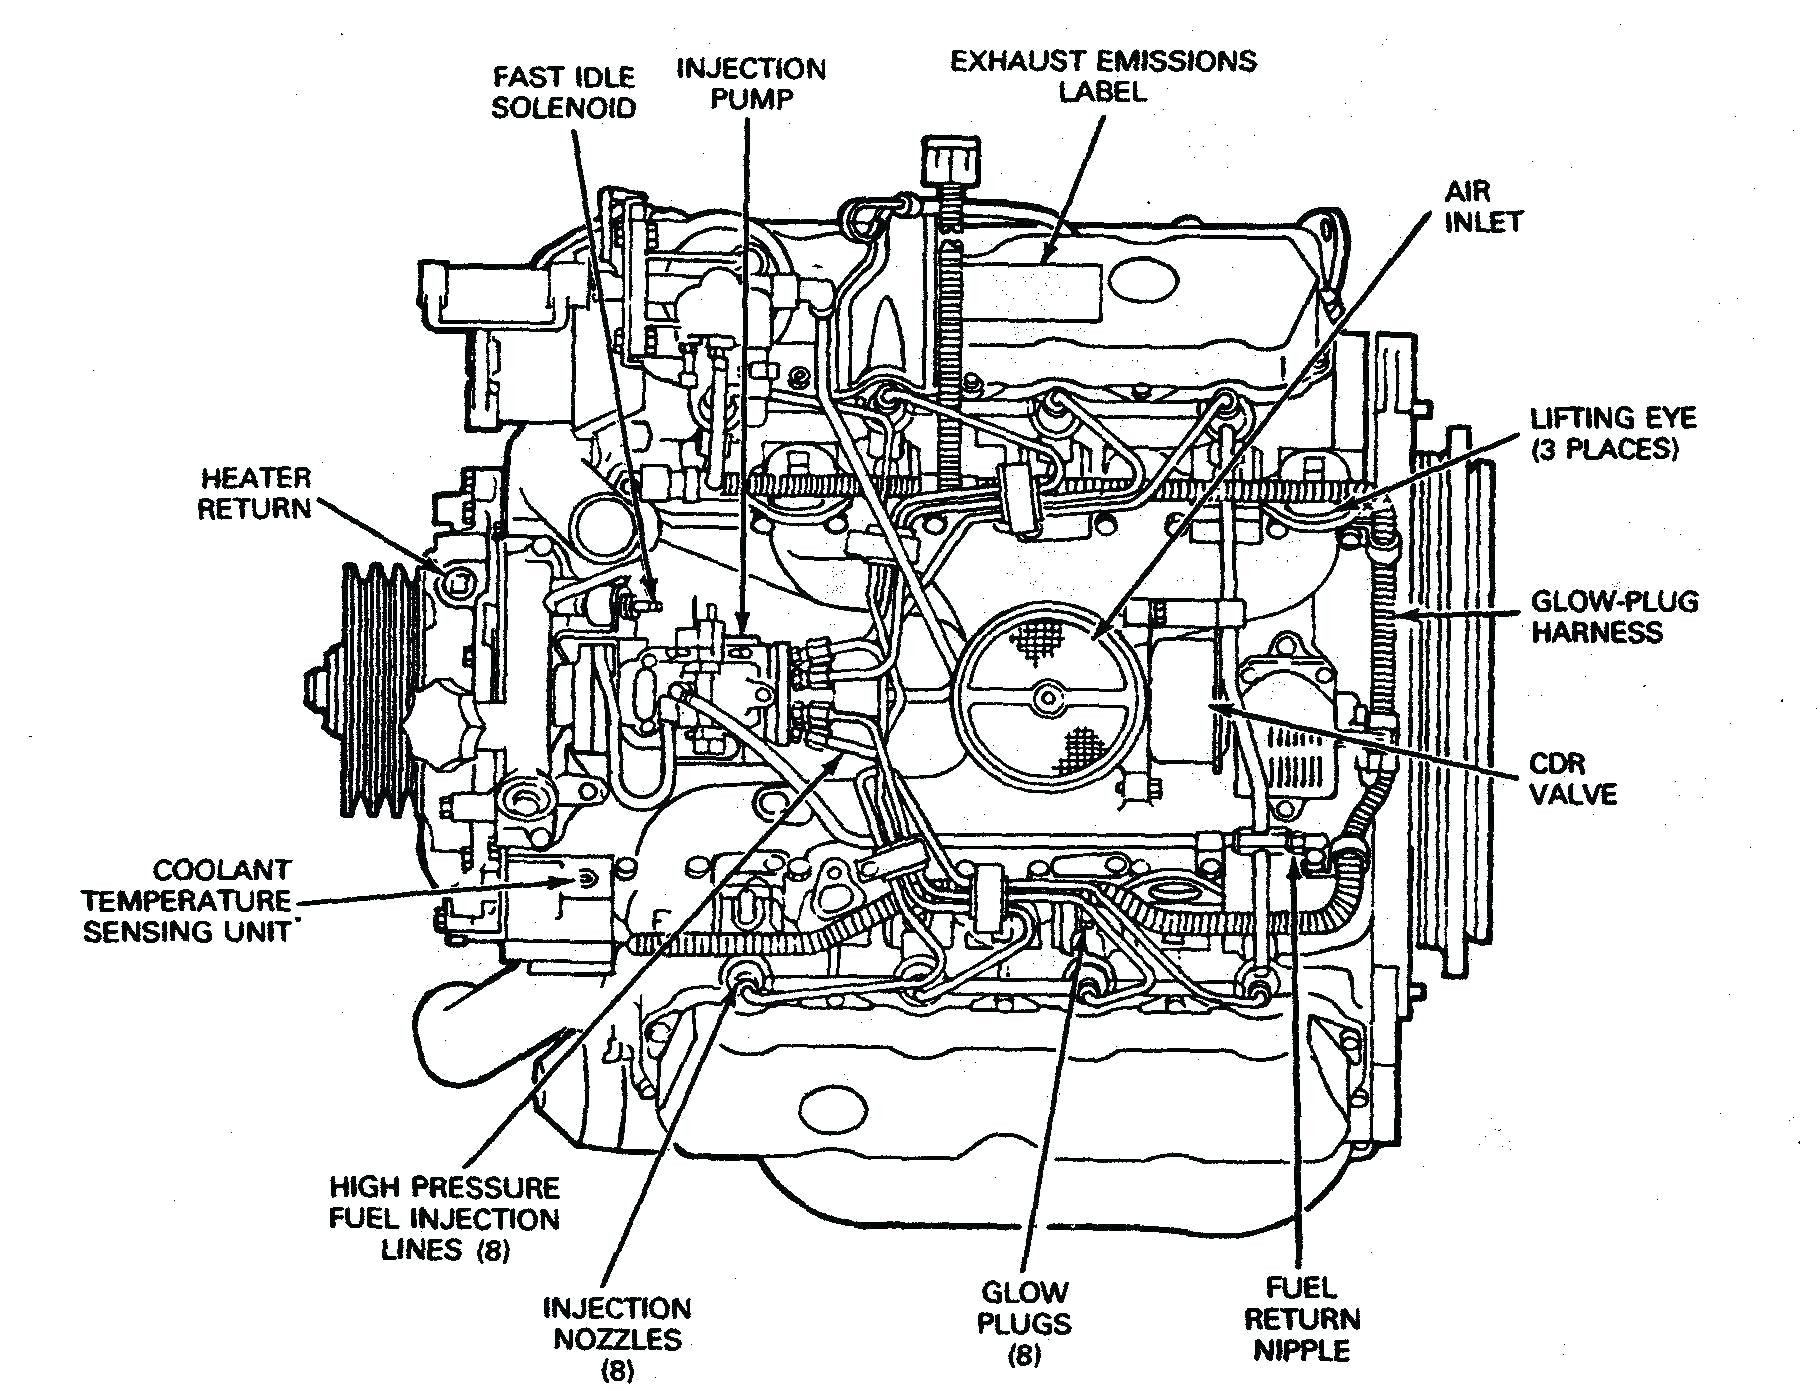 Vw Engine Parts Diagram Kawasaki Engine Parts Diagram Delighted Inspiration Of Vw Engine Parts Diagram